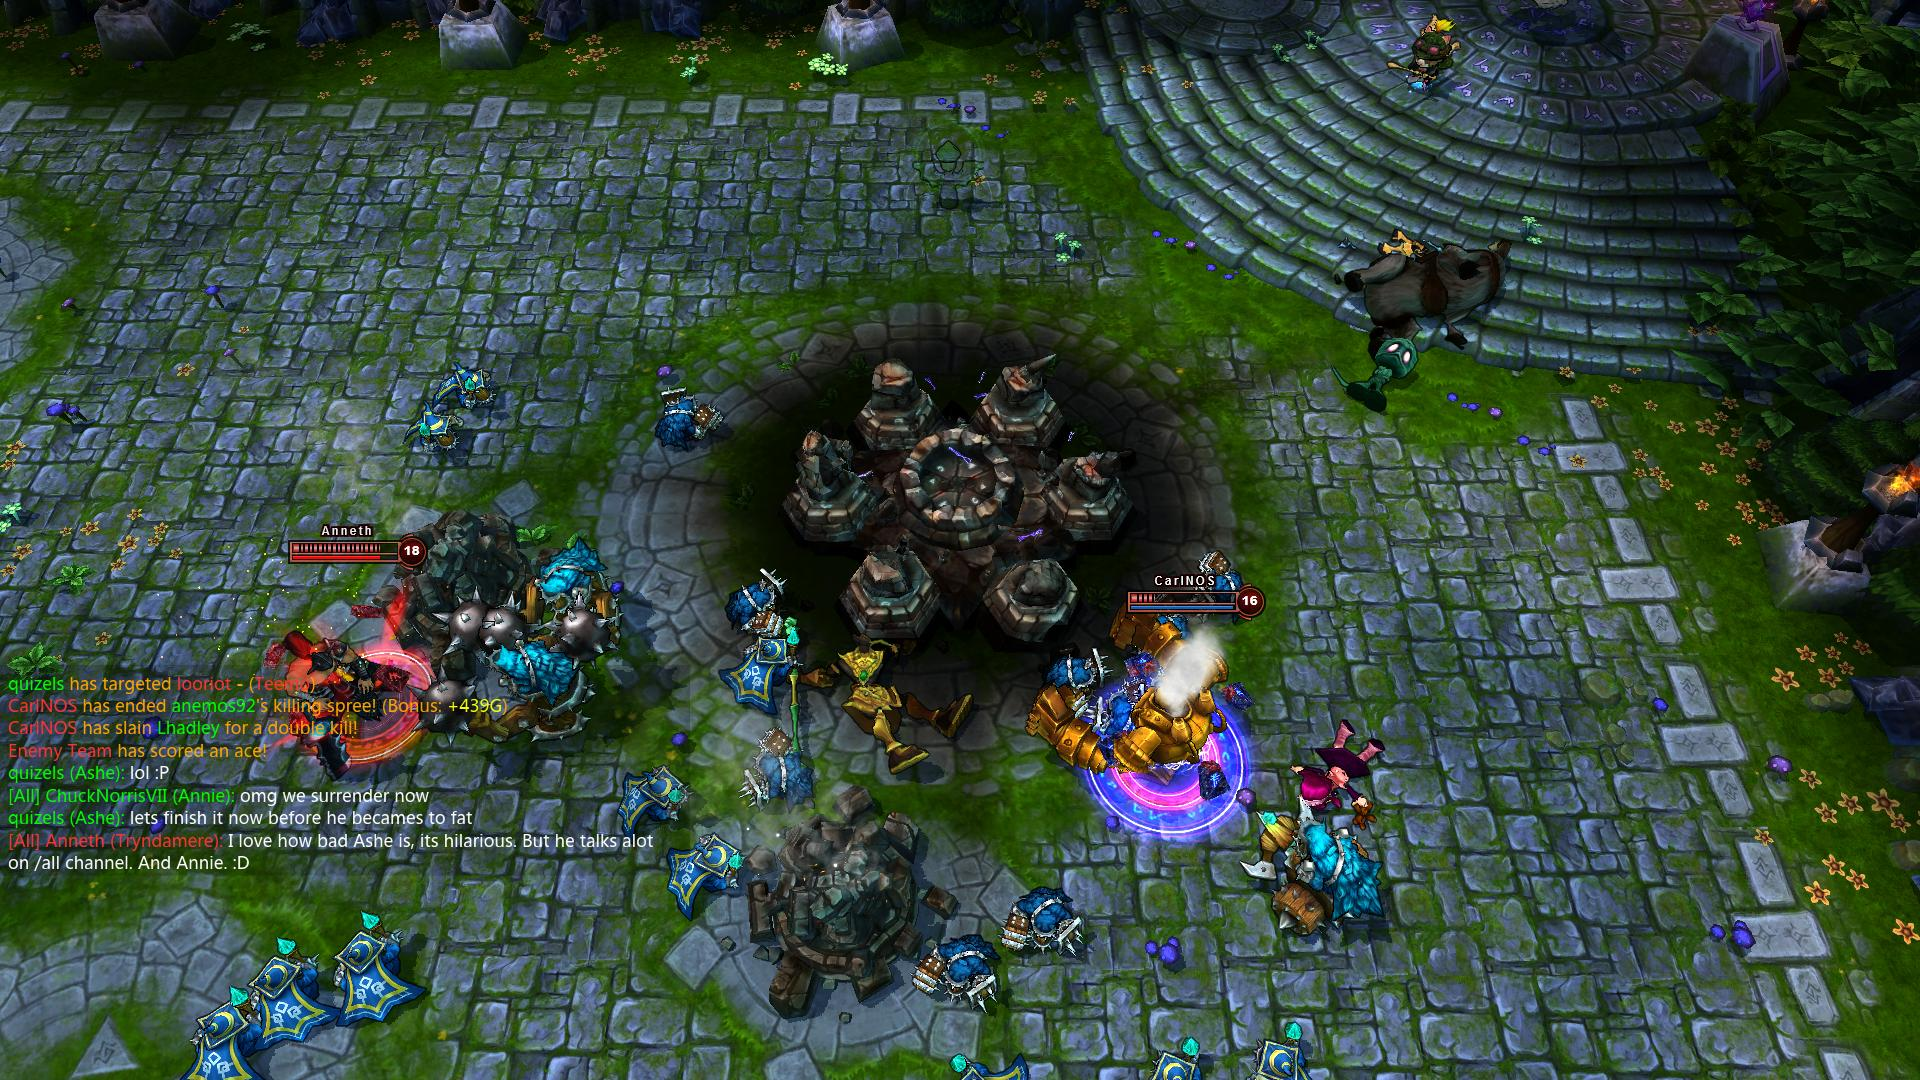 League of Legends Servers Attacked